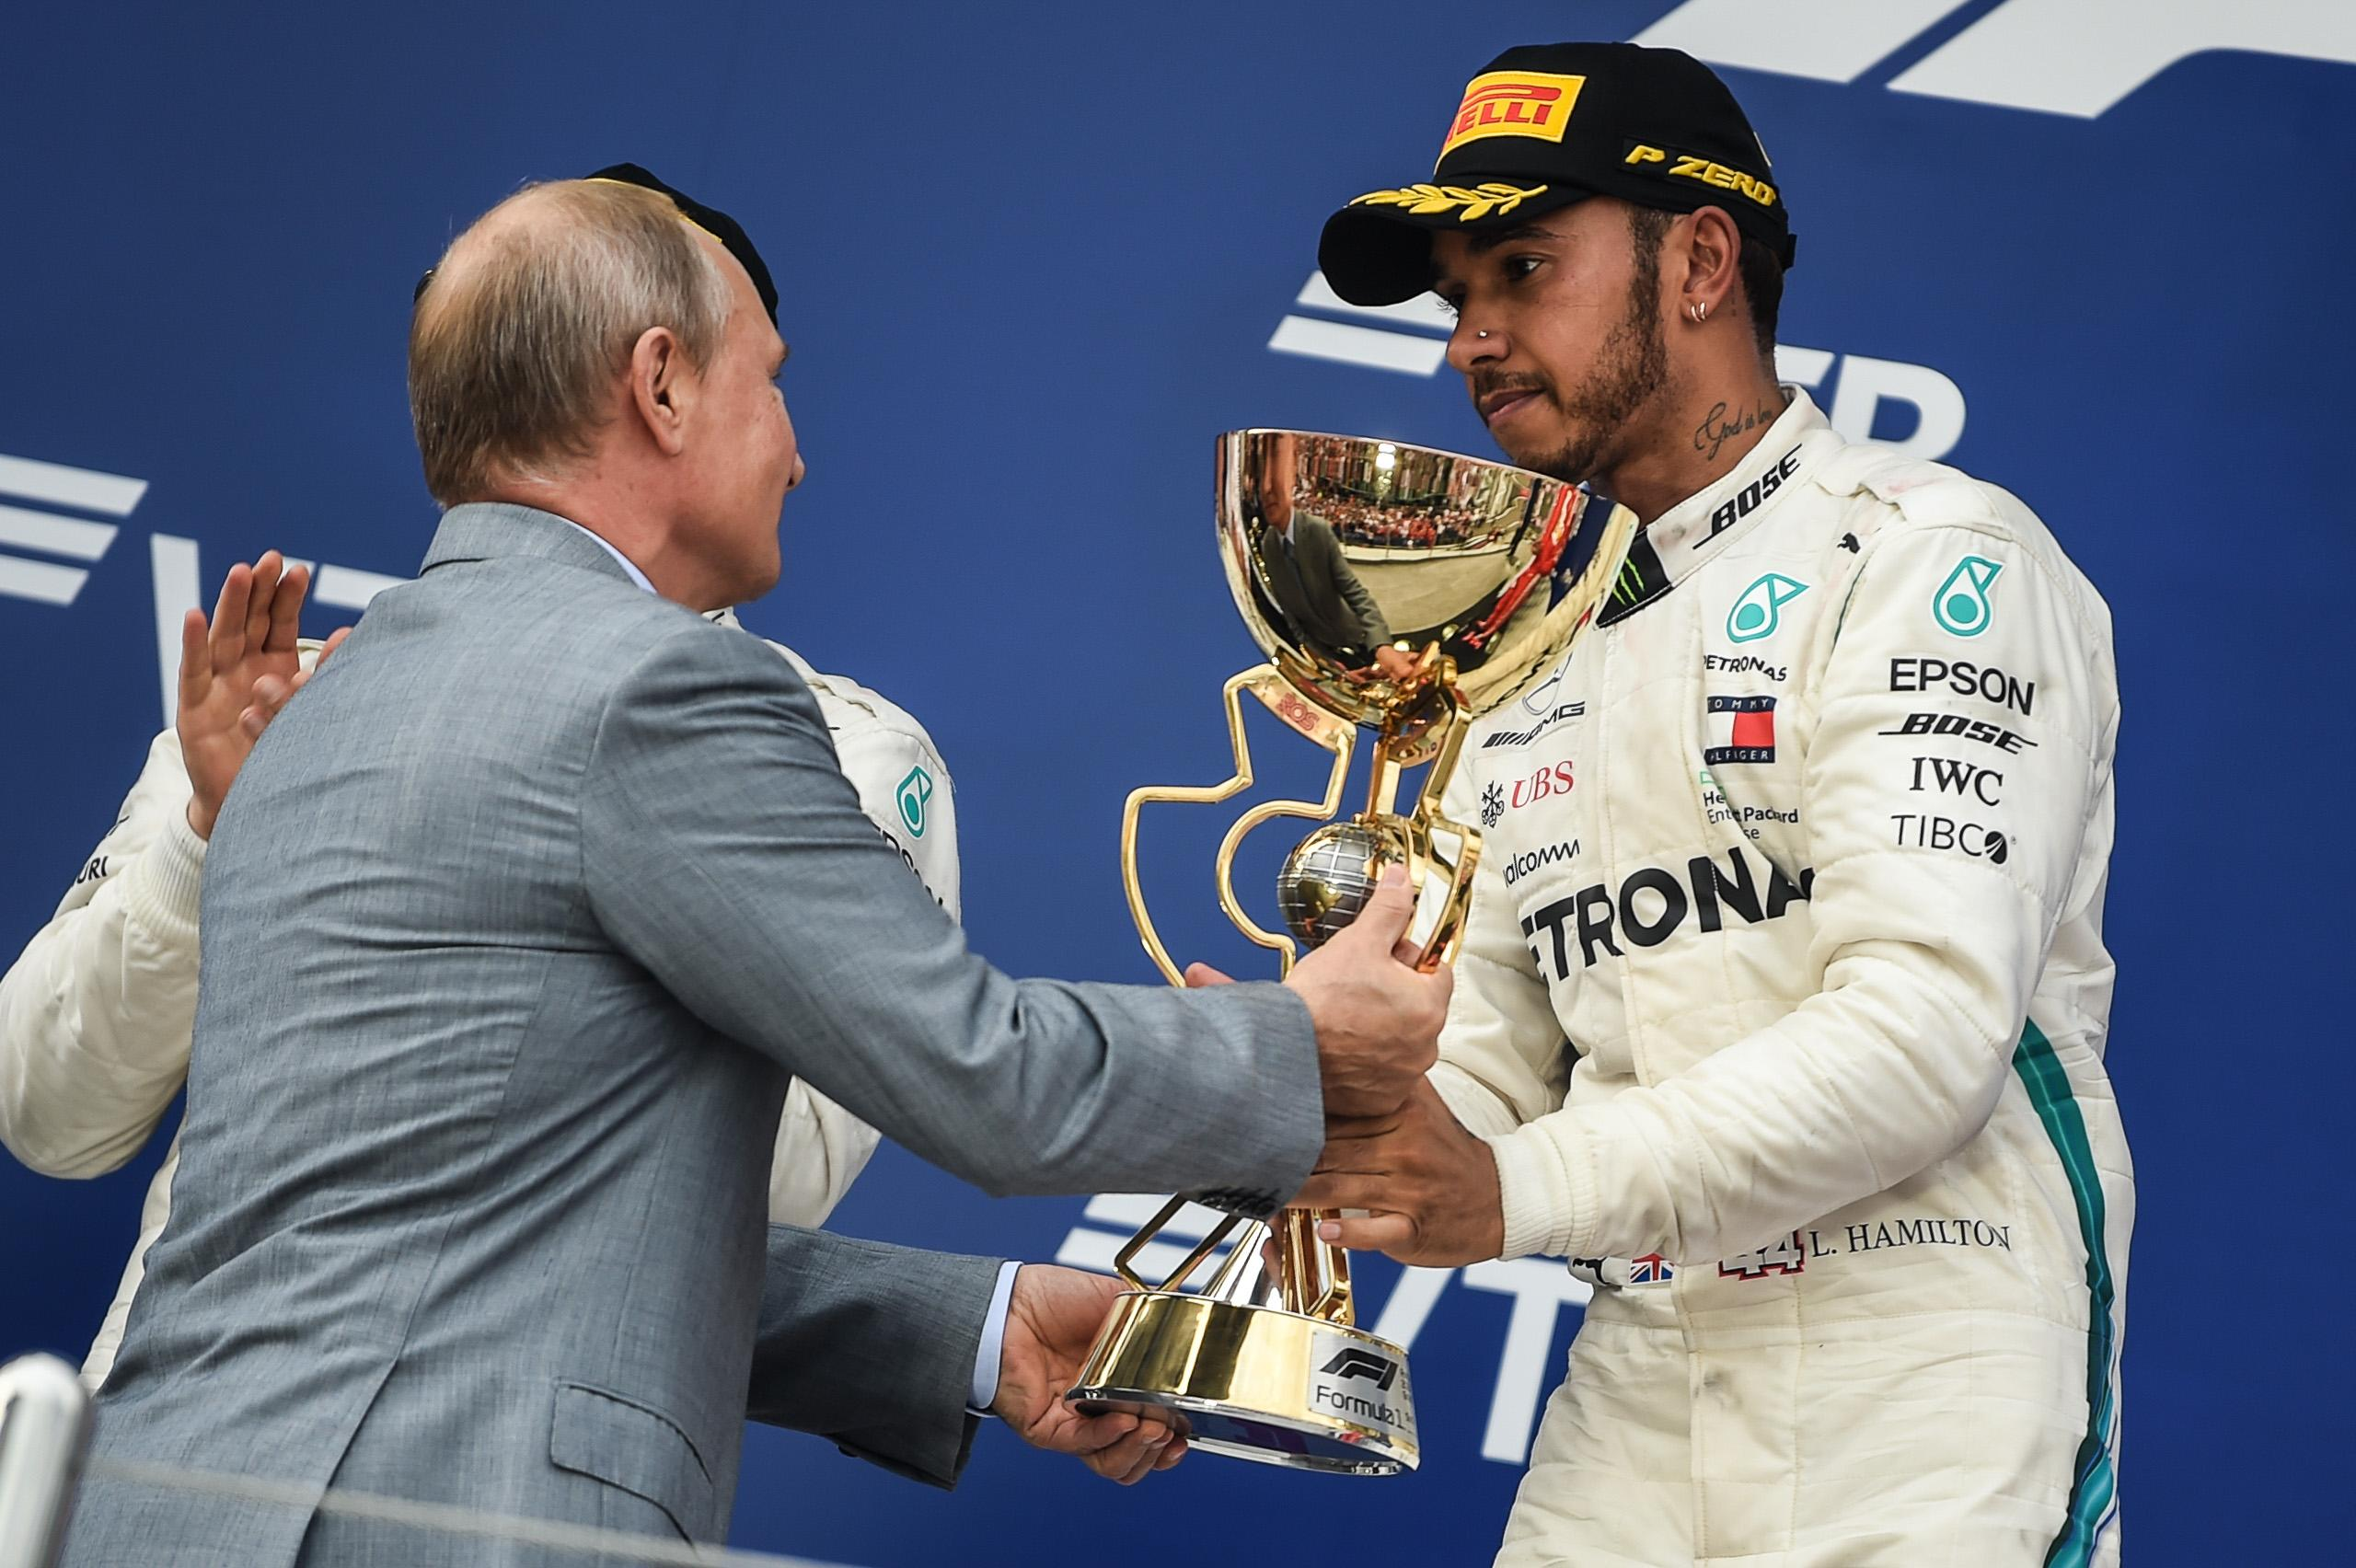 Putin handed Hamilton the trophy for winning the race